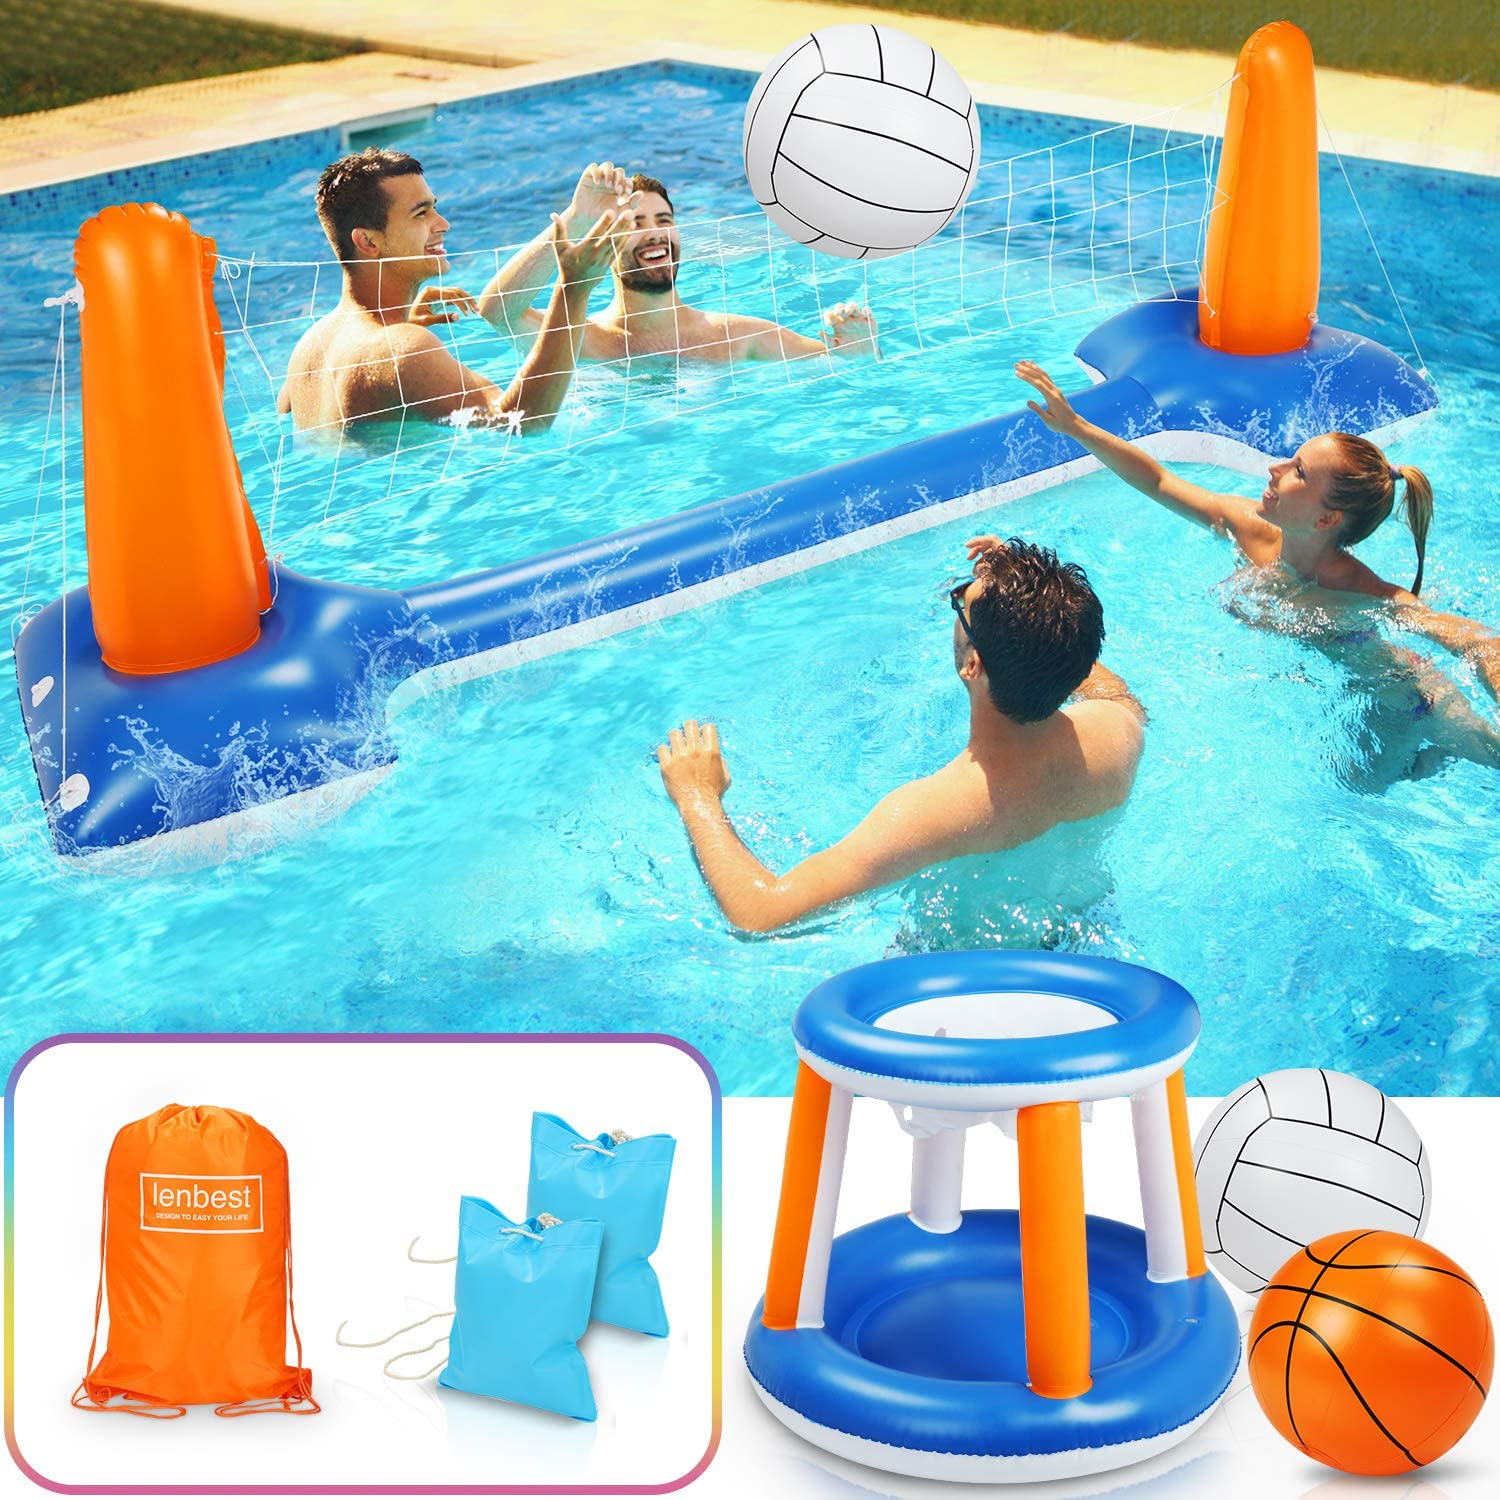 """lenbest Inflatable Volleyball Set, 115"""" Inflatable Pool Float Set Include Basketball Hoop Set & Balls Floating Swimming Pool Toy Pool Volleyball Game for Kids and Adults (115"""" x 38"""" x 28"""")"""